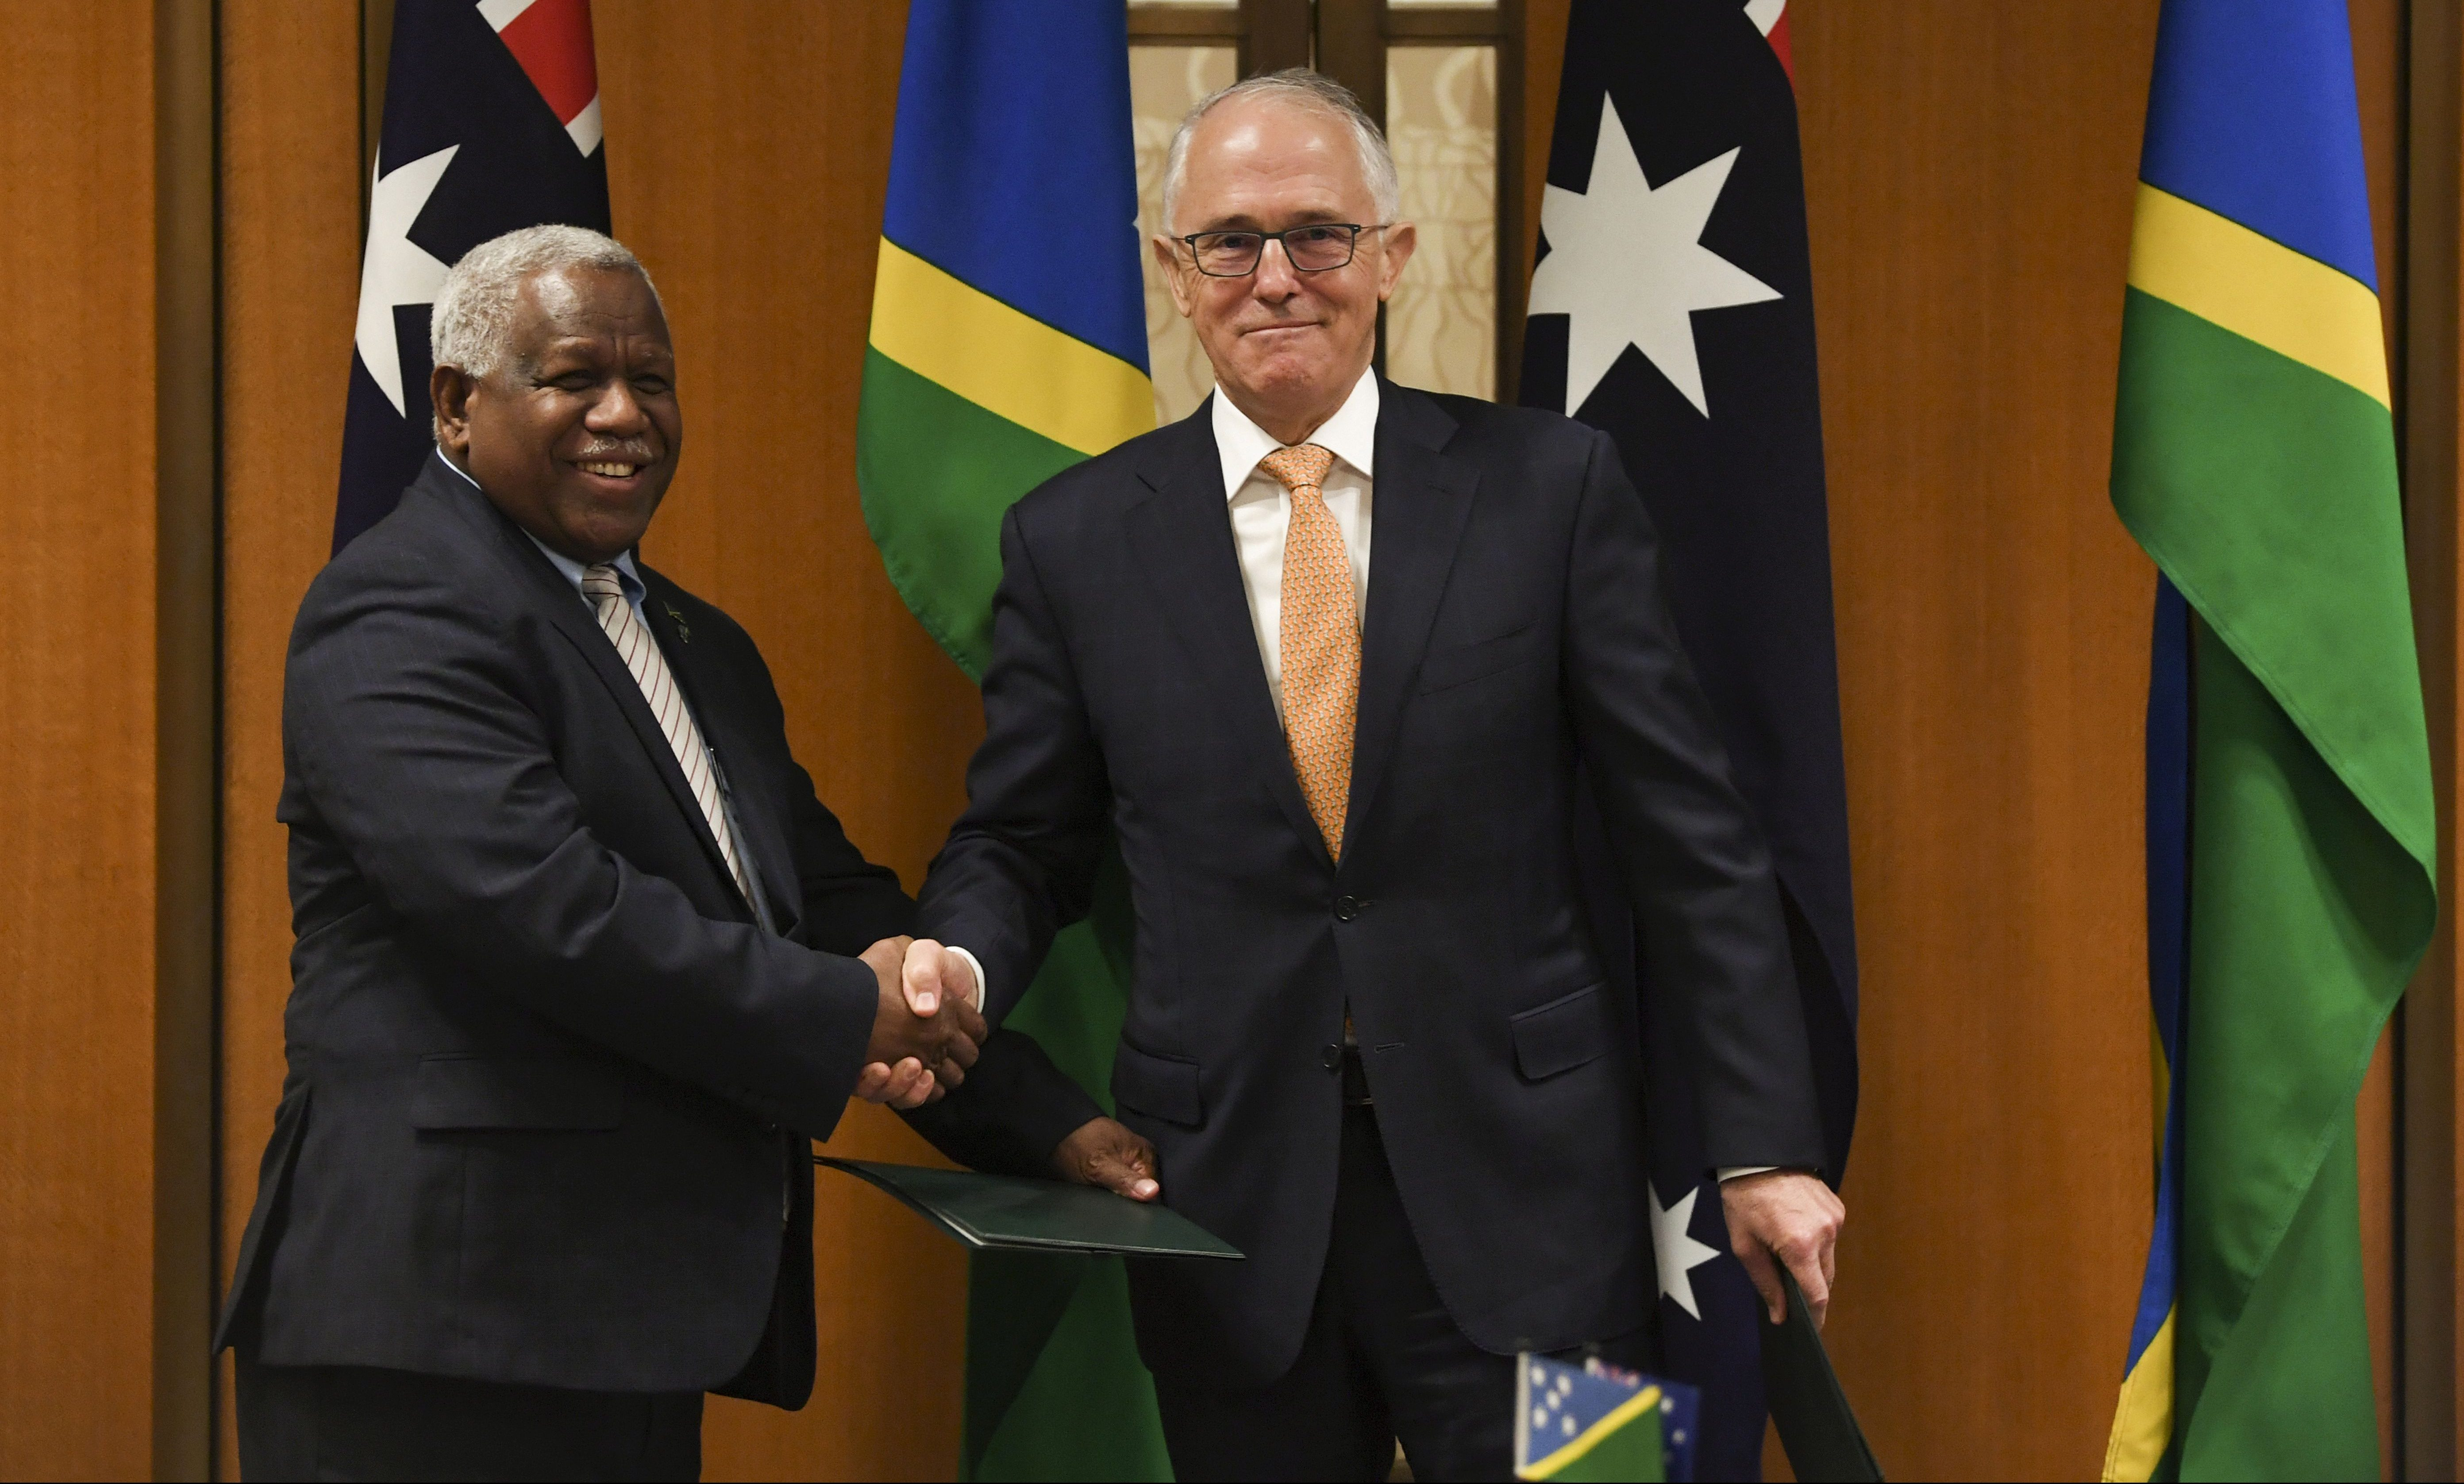 Prime Minister of the Solomon Islands Rick Houenipwela and Australian Prime Minister Malcolm Turnbull shake hands during a signing ceremony at Parliament House in Canberra